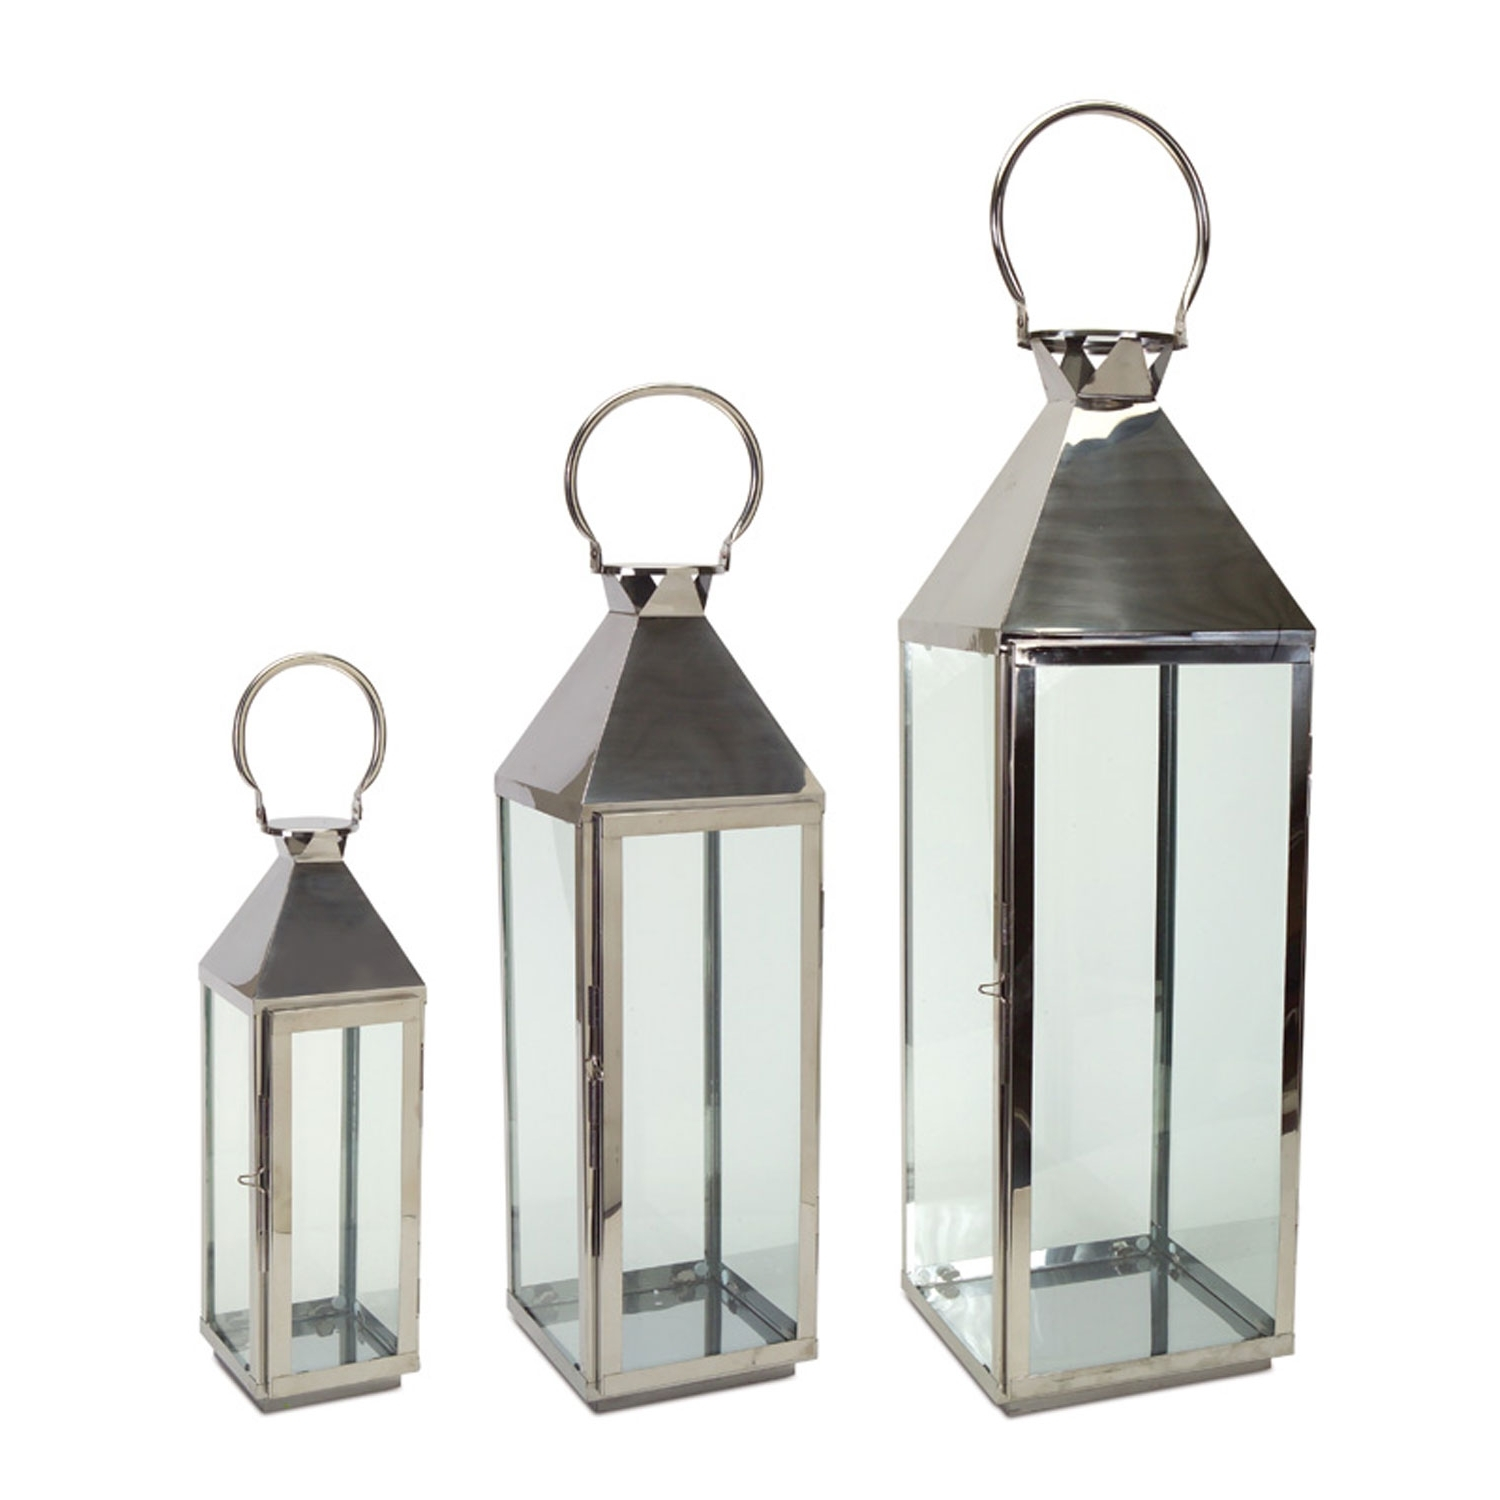 Candle Lanterns, Outdoor Hanging Lanterns, Decorative On Sale In Well Known Outdoor Hanging Lanterns For Candles (Gallery 15 of 20)